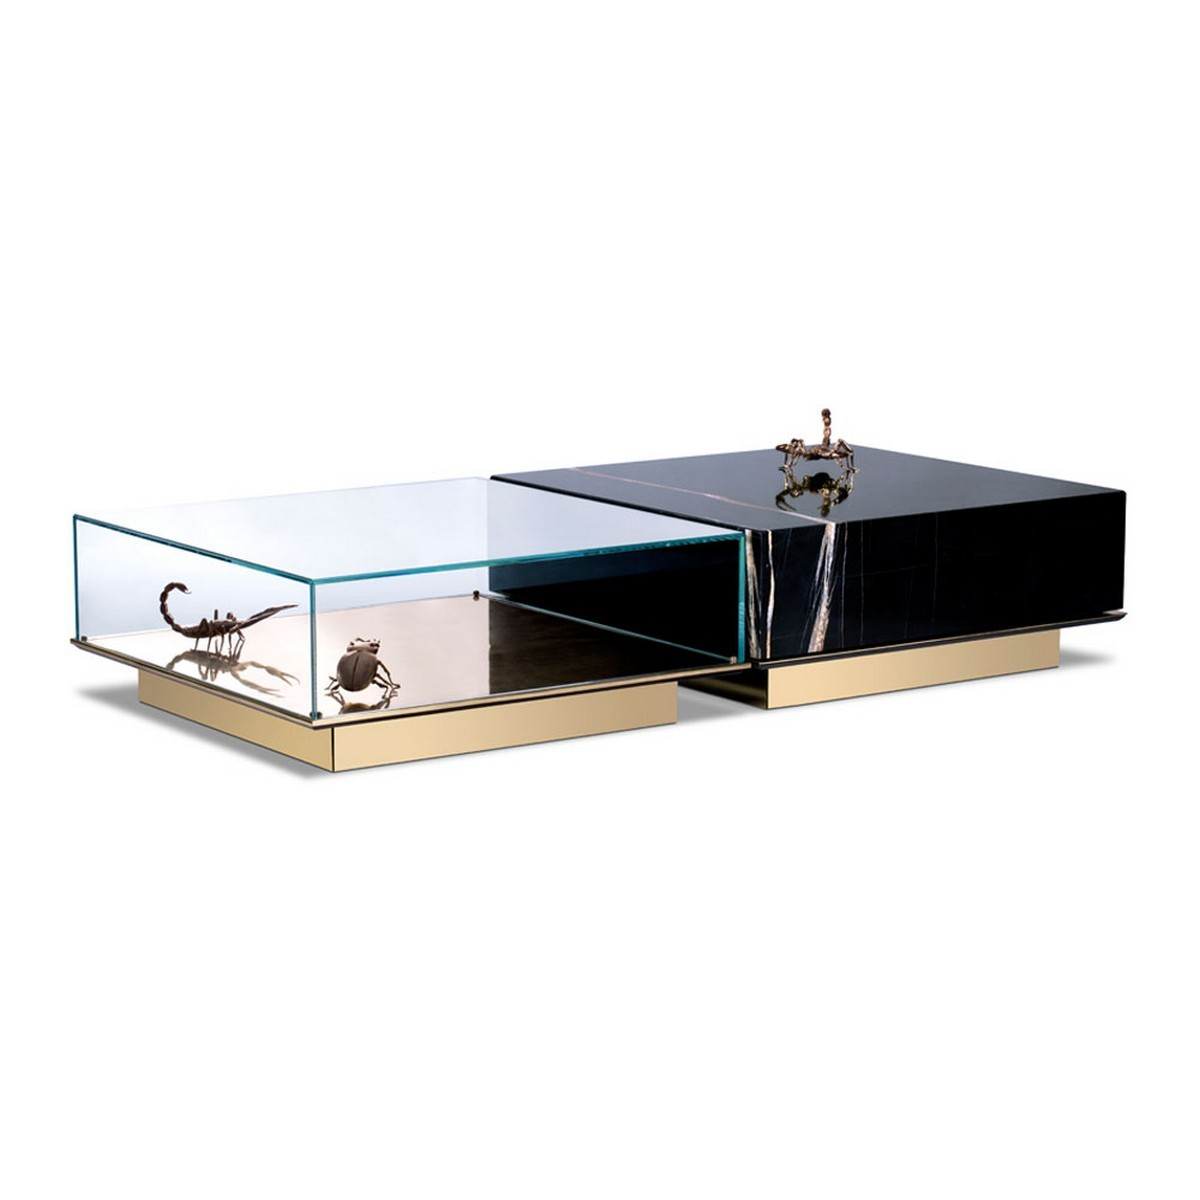 Top Contemporary Coffee Tables contemporary coffee tables Top Contemporary Coffee Tables meta